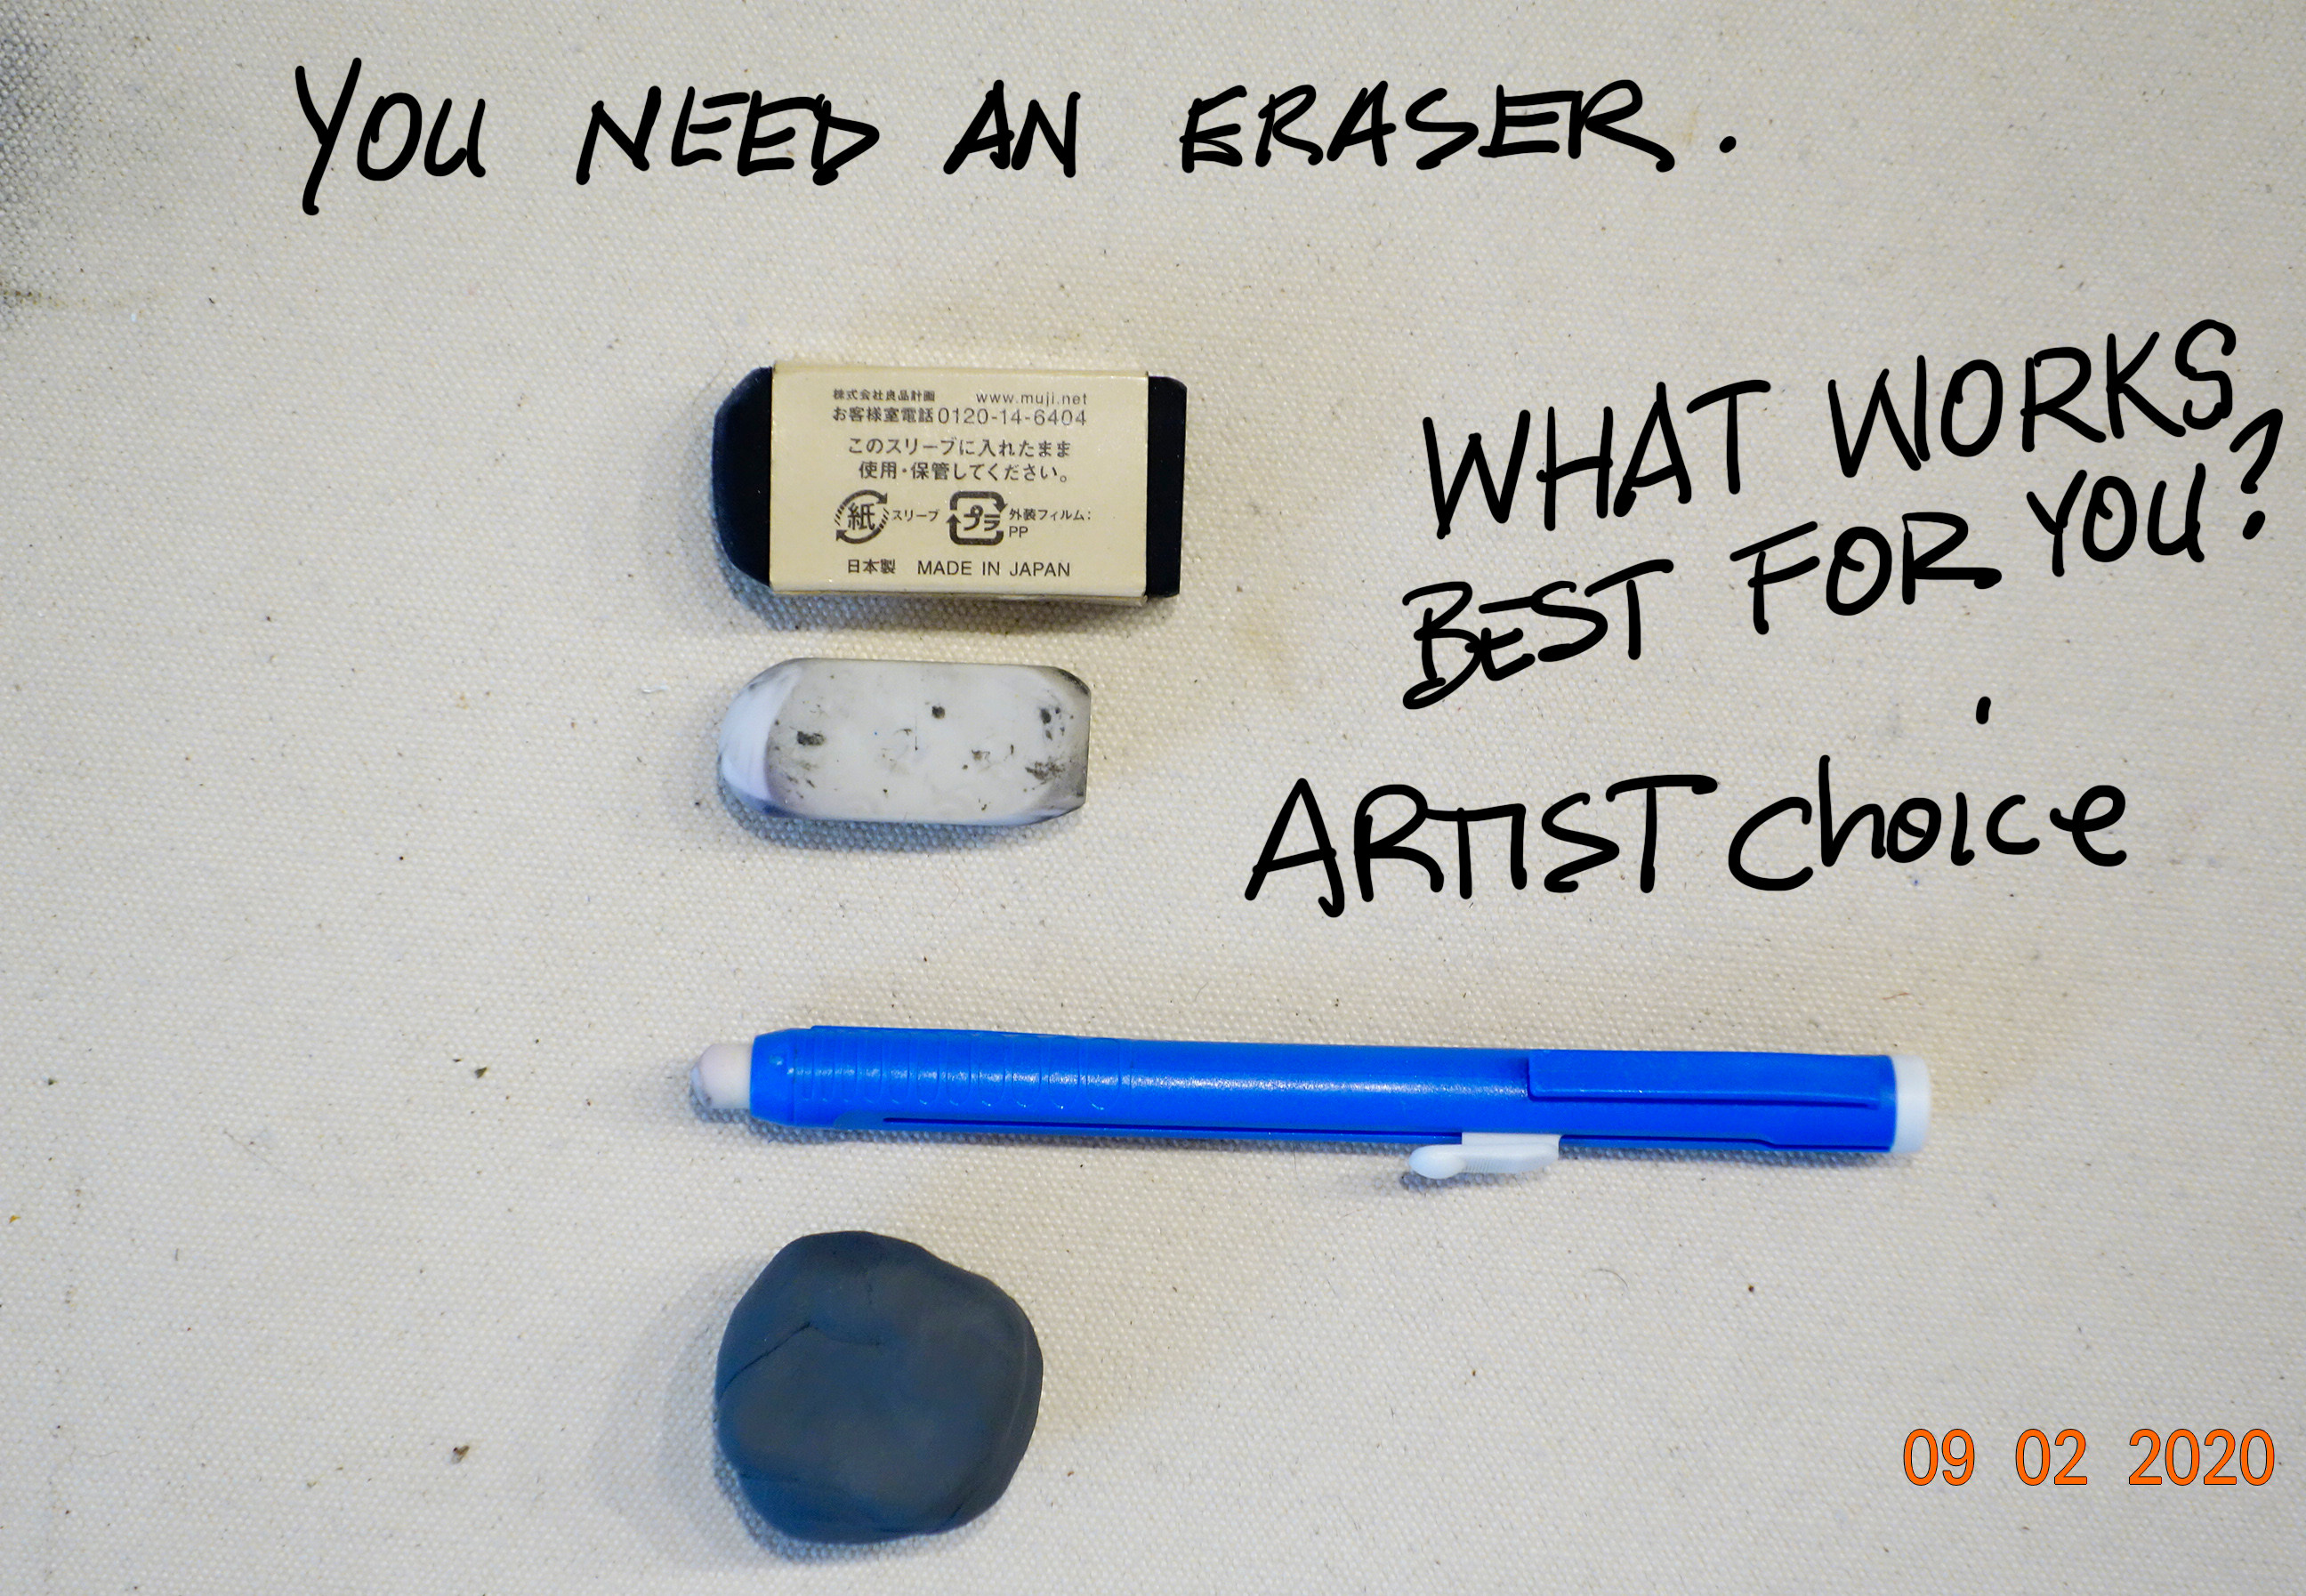 Get an eraser that works for you. I like the rubber kind and the eraser tubes that go in holders for detailed and tights spots. You are the artist you decide.